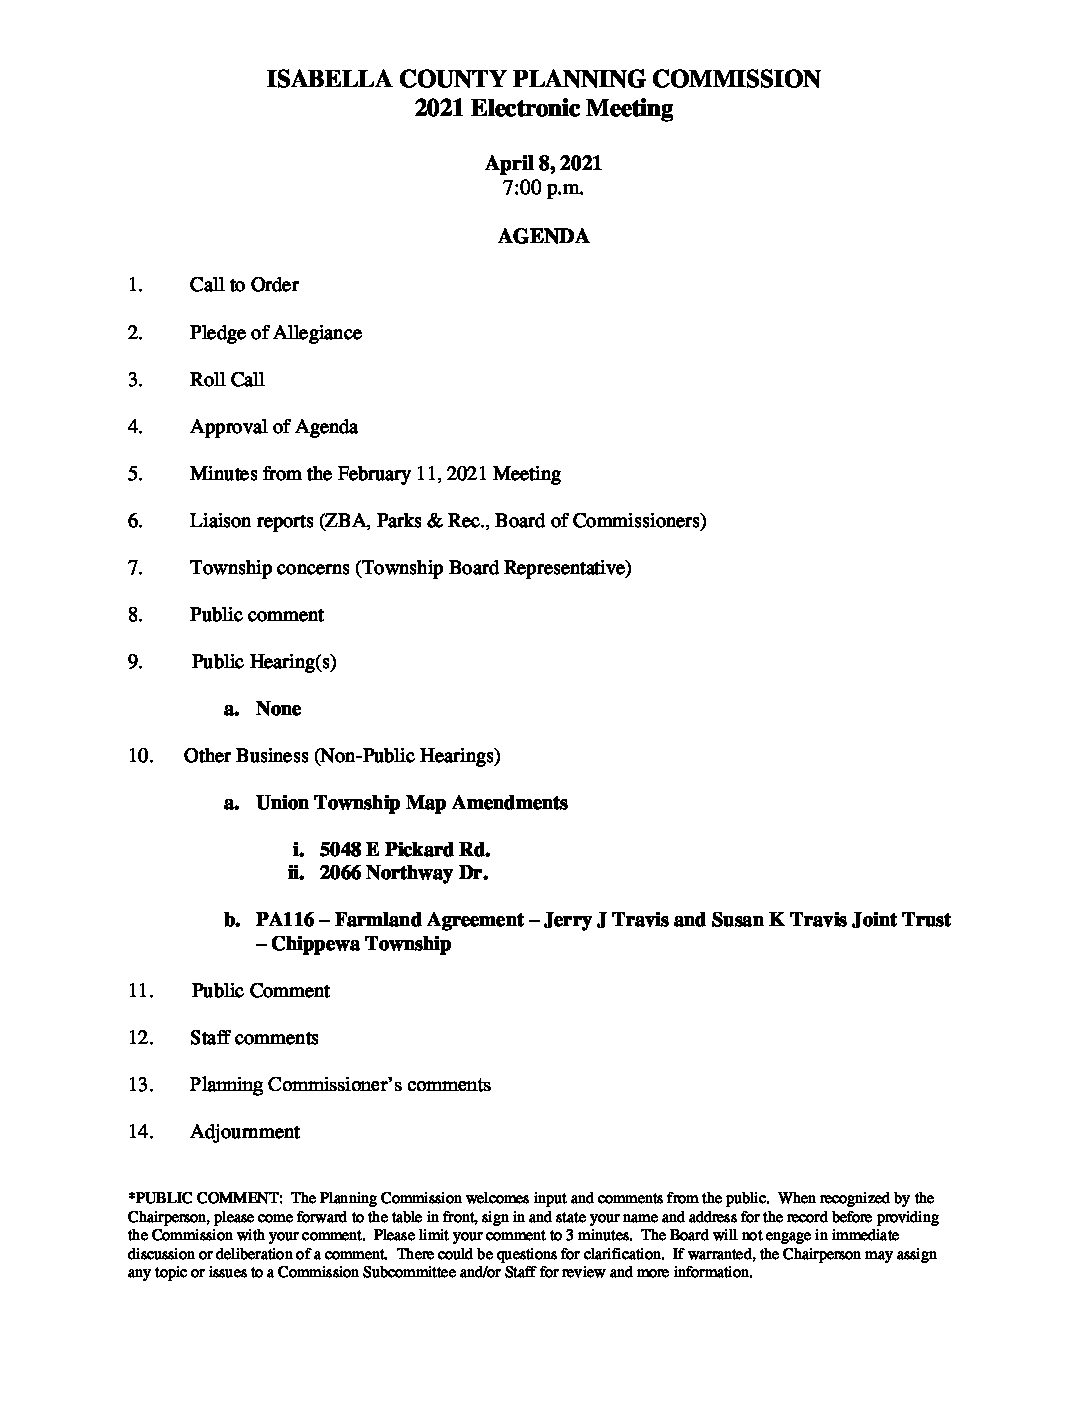 preview image of first page April 8, 2021 Agenda